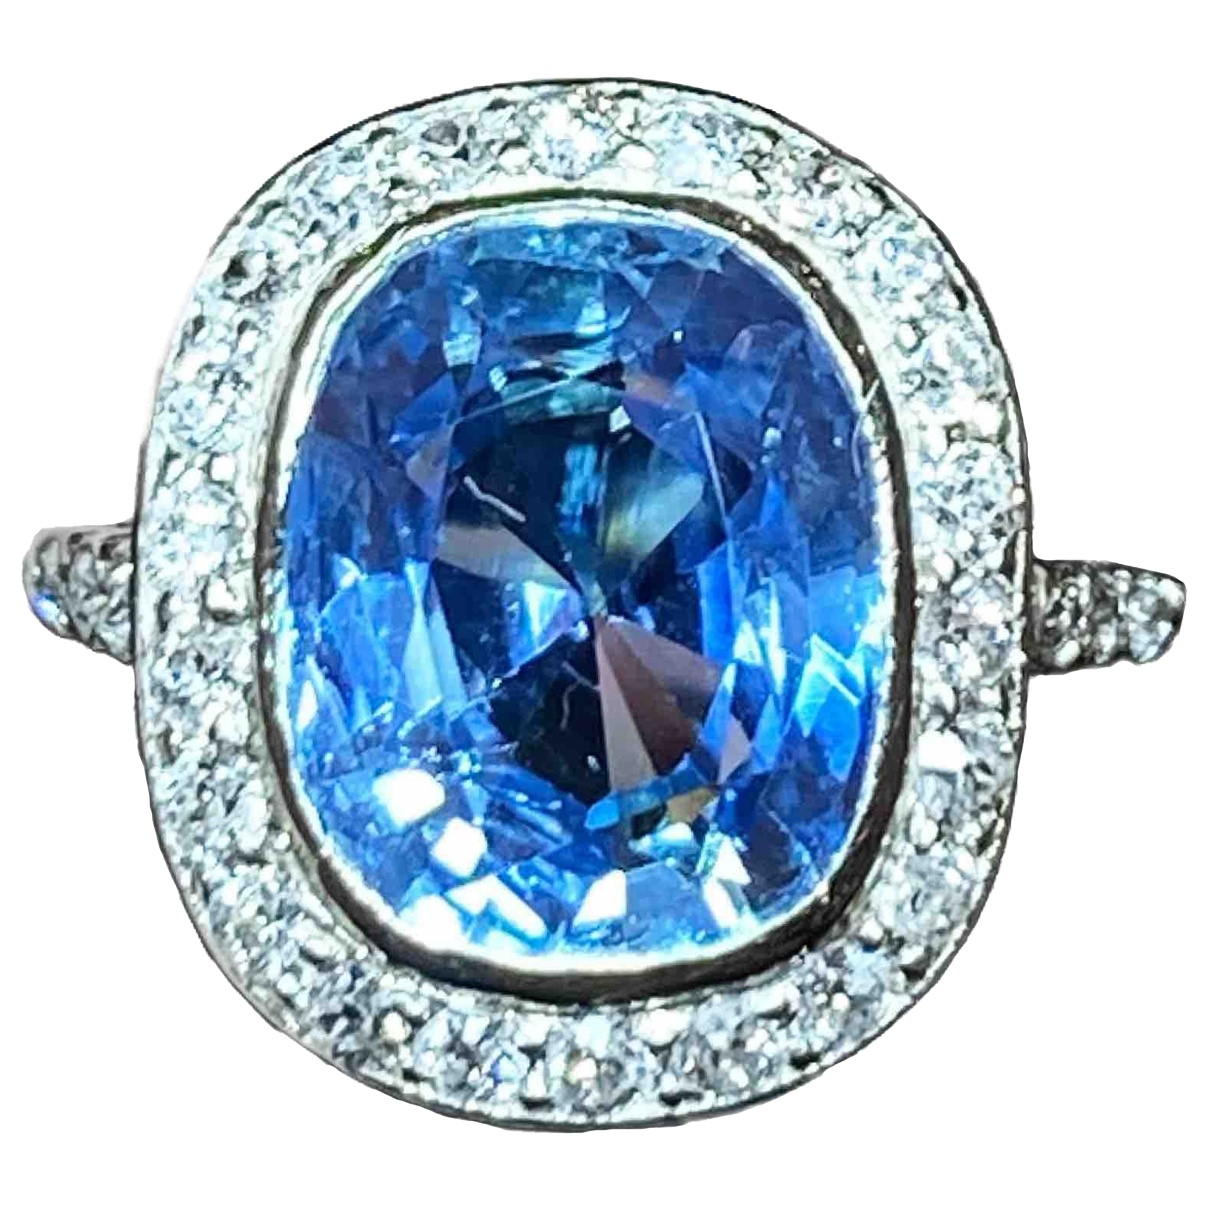 Boucheron \N Ring in  Blau Weissgold